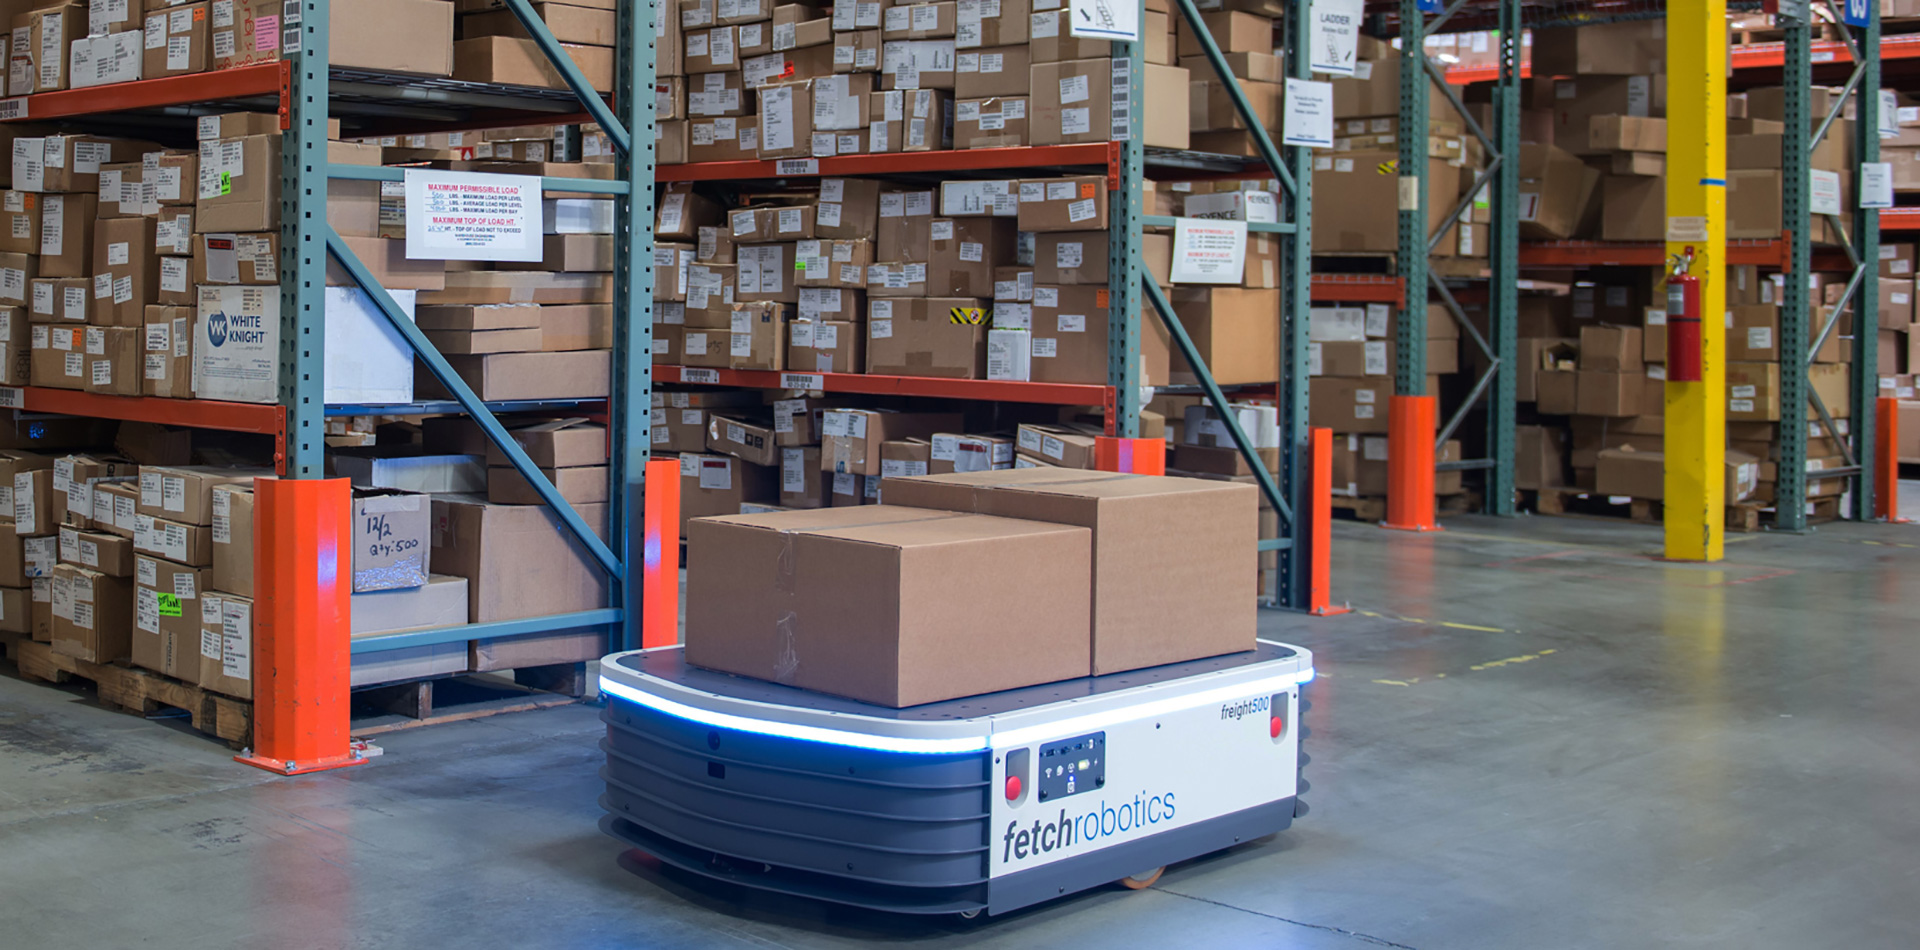 Fetch's Autonomous Warehouse Robots Use SICK TiM571 LiDAR Sensors to Avoid Running into Things.